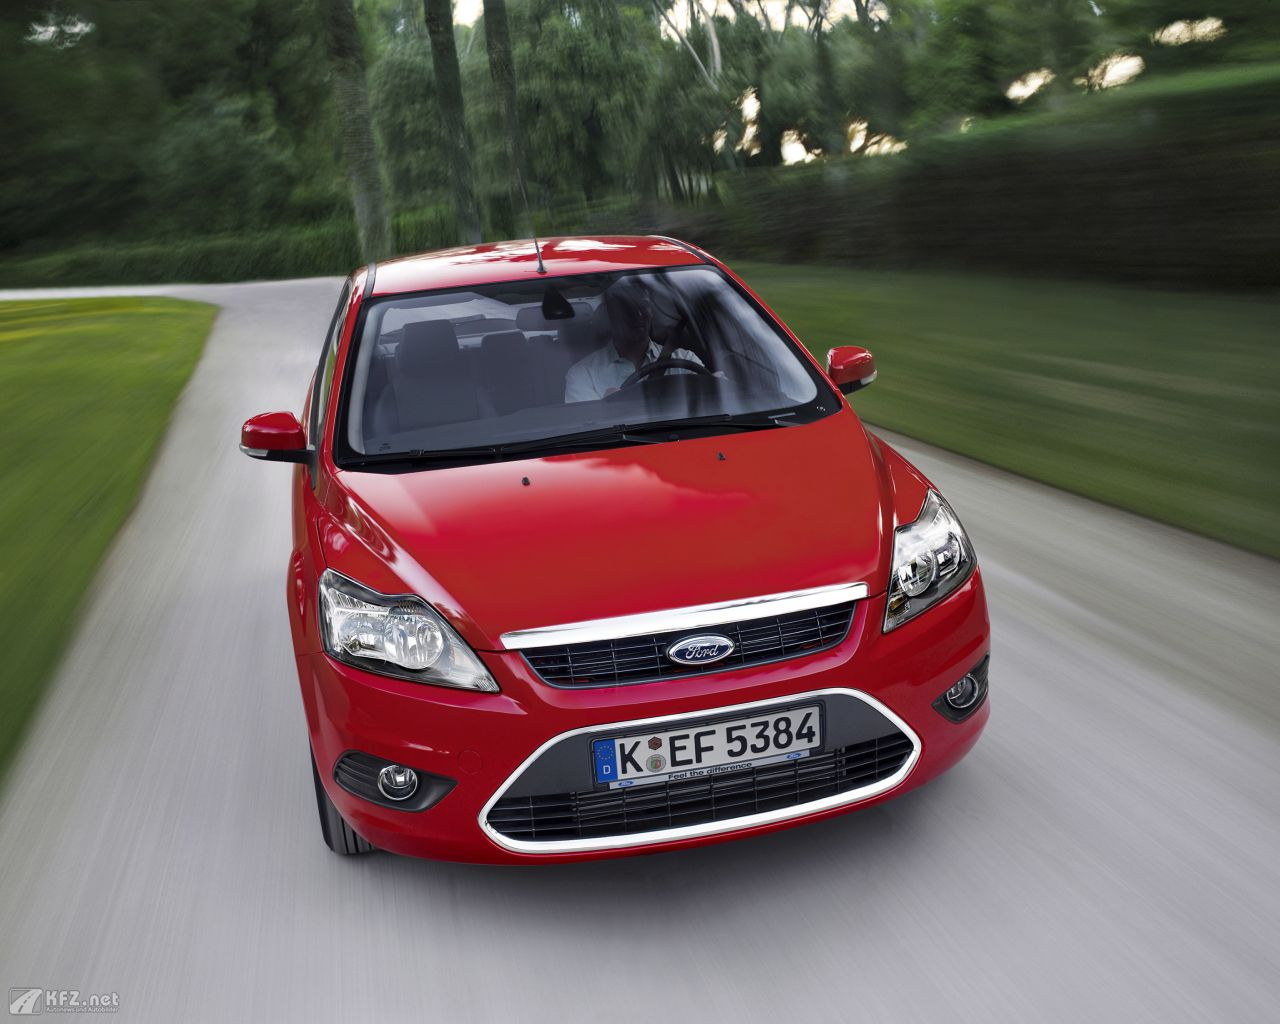 ford-focus-1280x1024-7